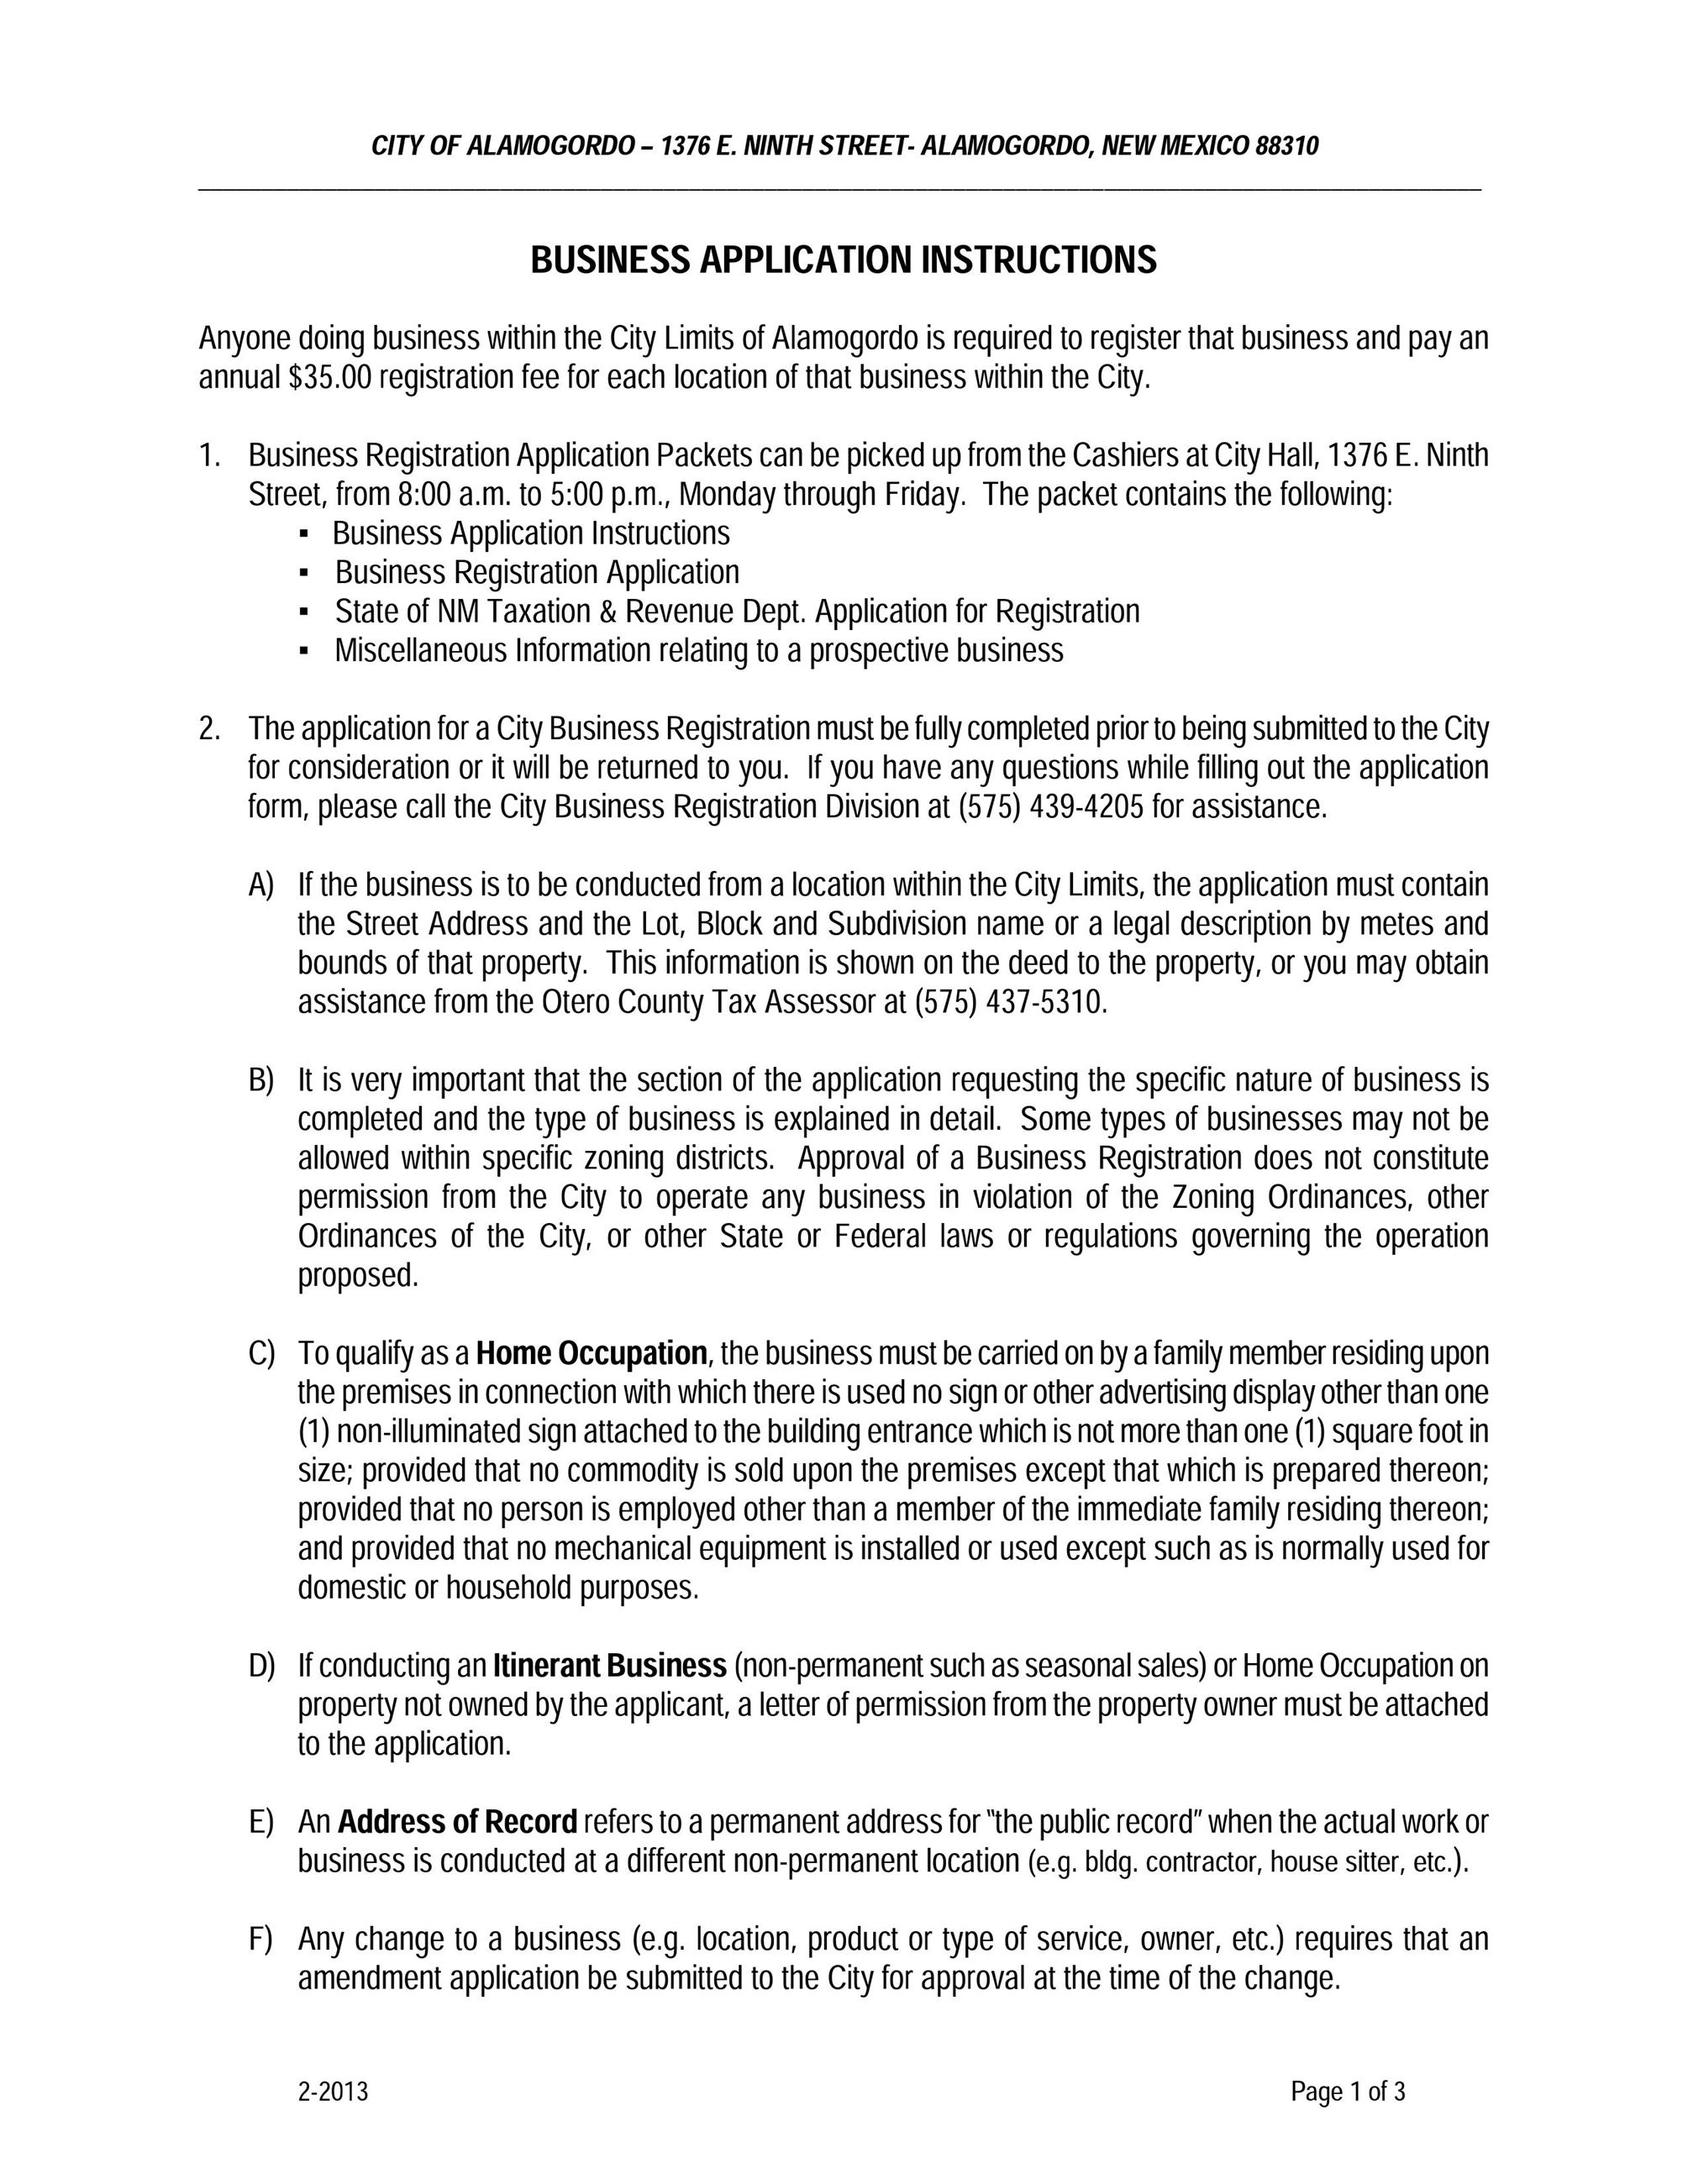 City of Alamogordo Business Application Instructions, Page 1 of 3